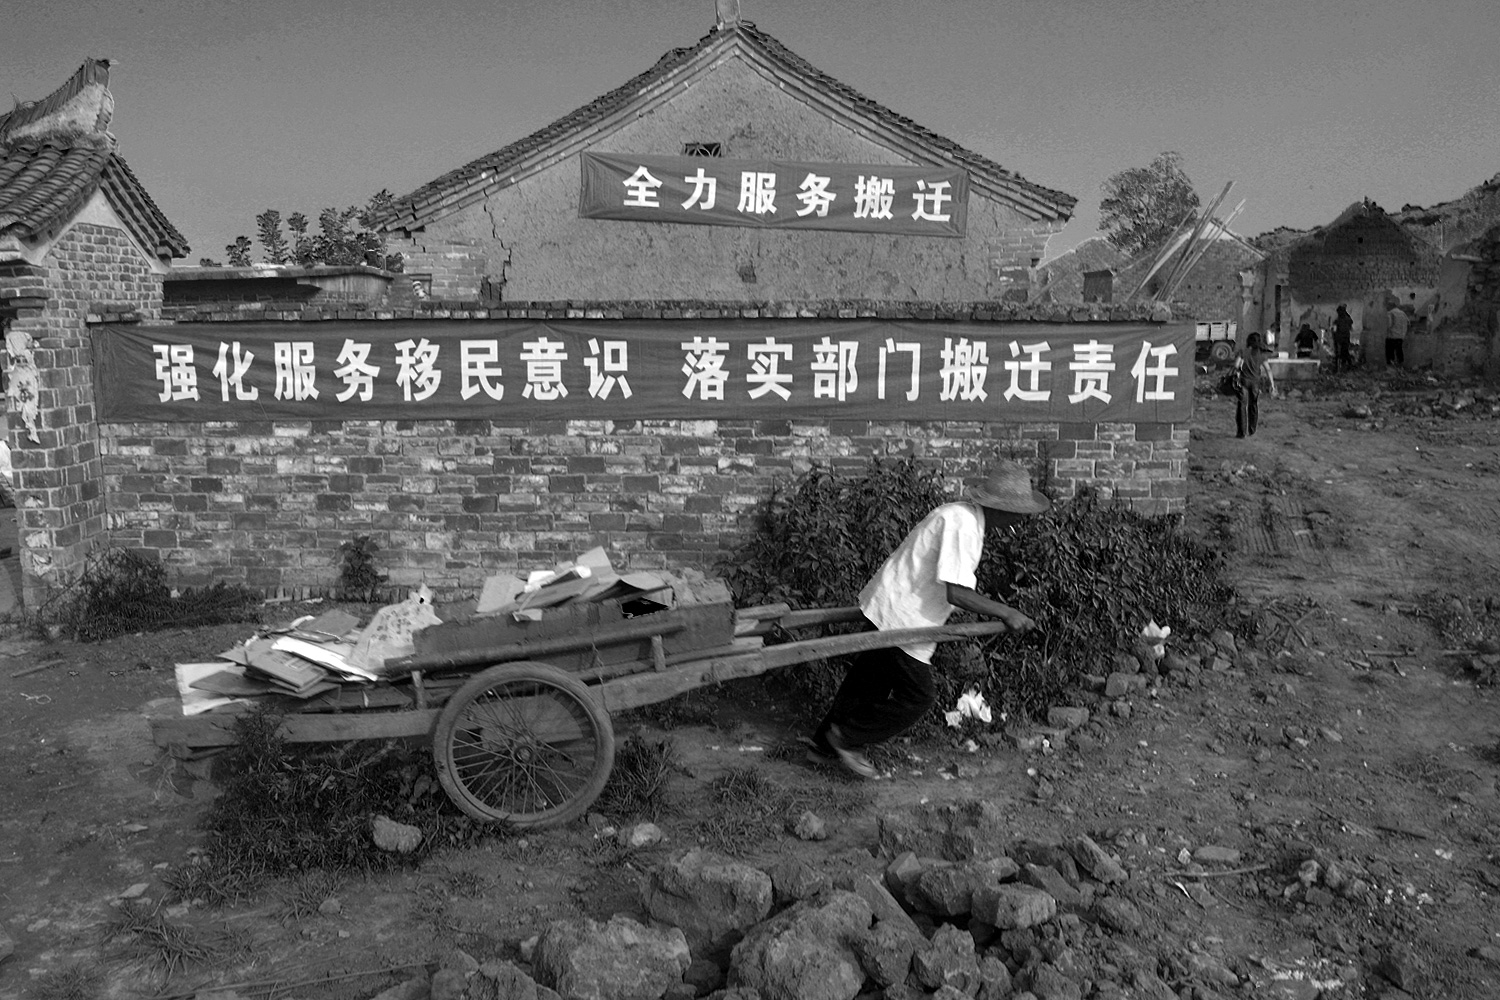 "Under banners that read ""Wholeheartedly Support Relocation"" and ""Strengthen Your Awareness to Serve Migrants to Fulfill Relevant Departments' Responsibilities in Relocation,"" a farmer pulls his belongings in a handcart to load them on a truck to transport them to his new home."